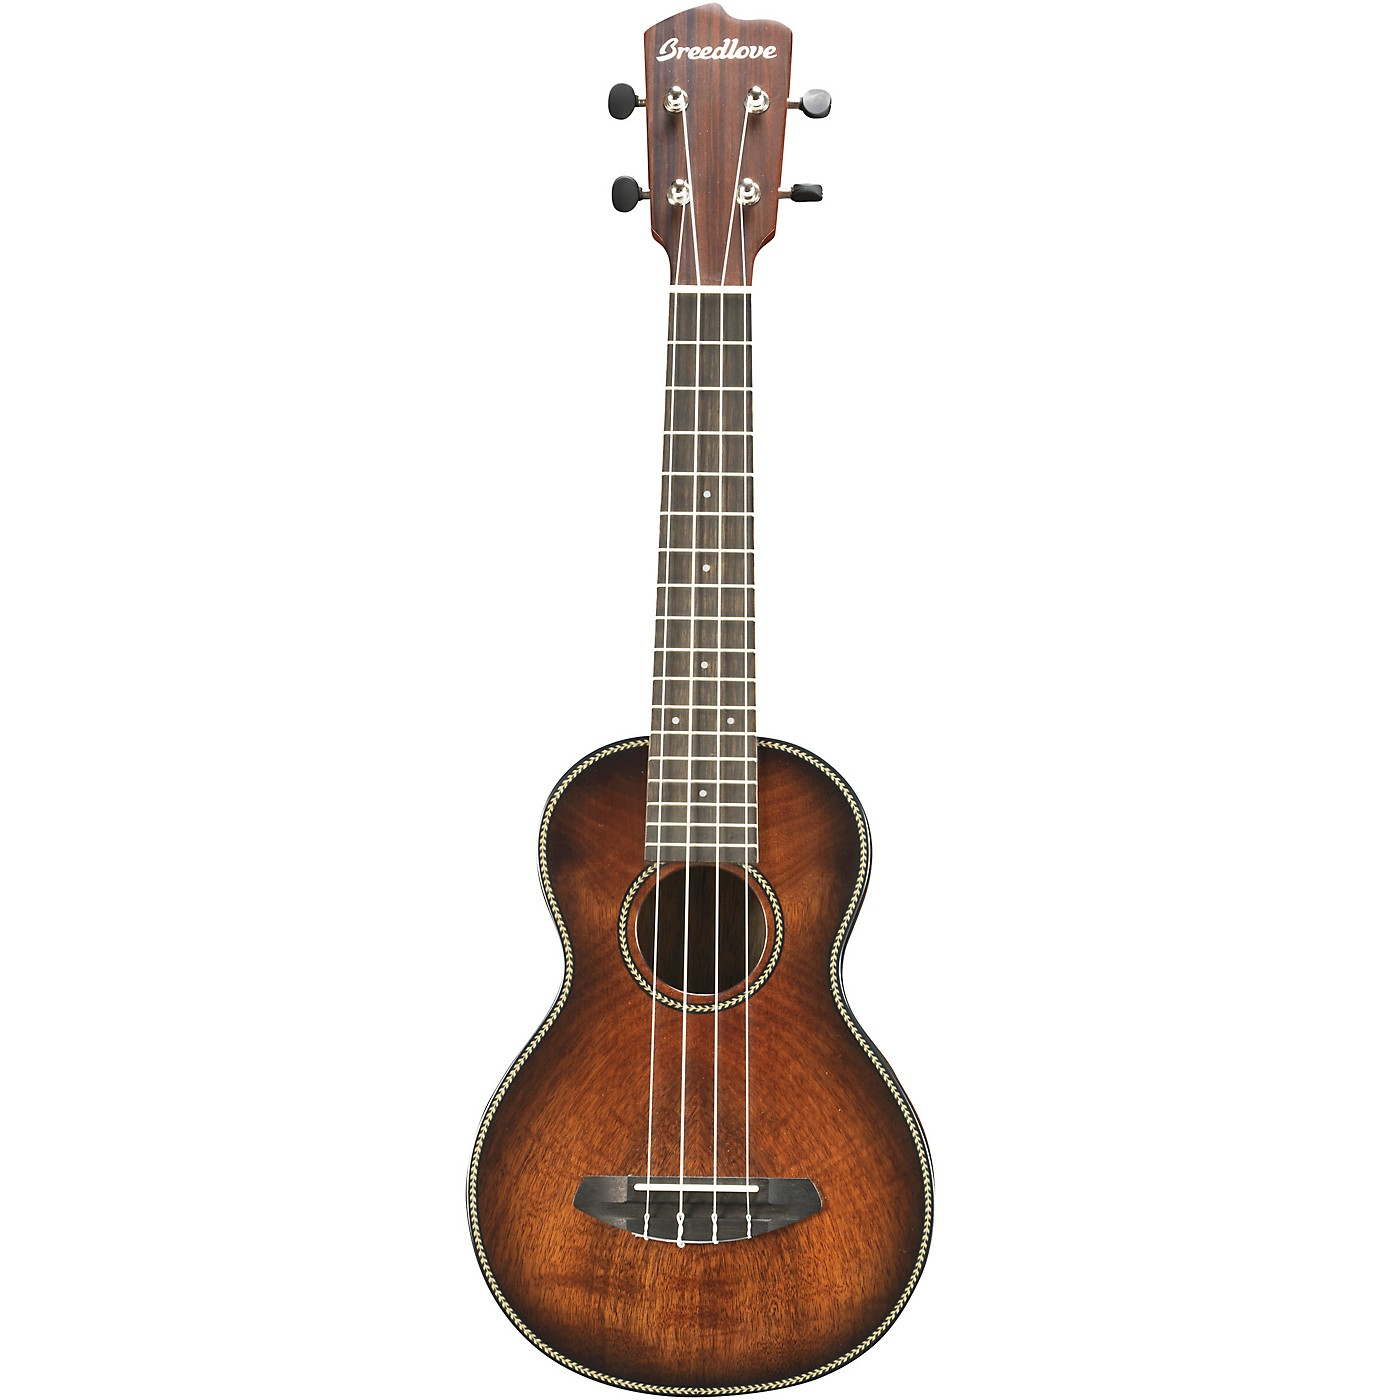 Breedlove Pursuit Concert Acoustic Ukulele thumbnail